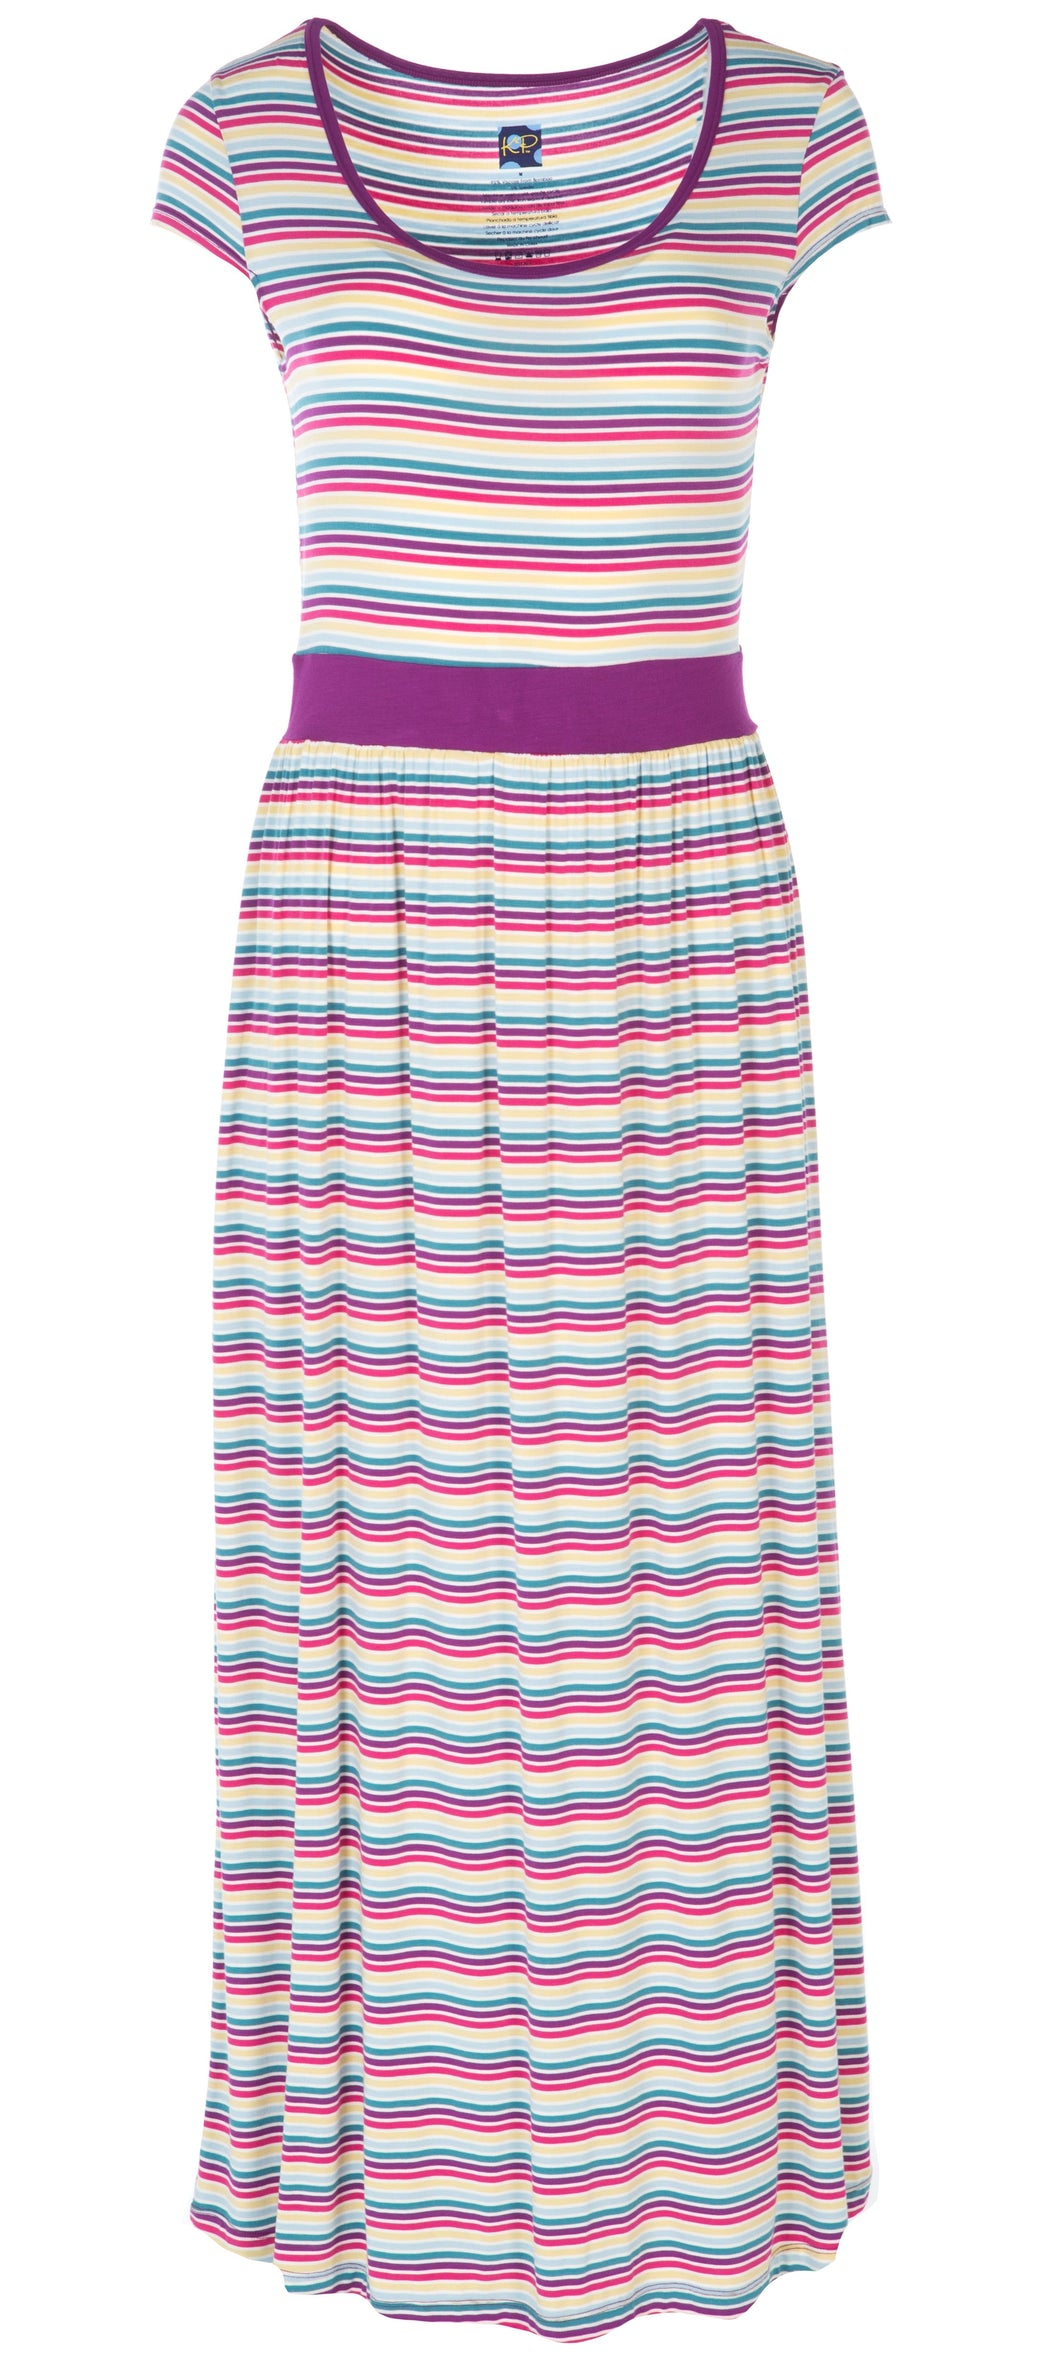 Kickee Pants Print Cap Sleeve Nightgown in Girl Perth Stripe